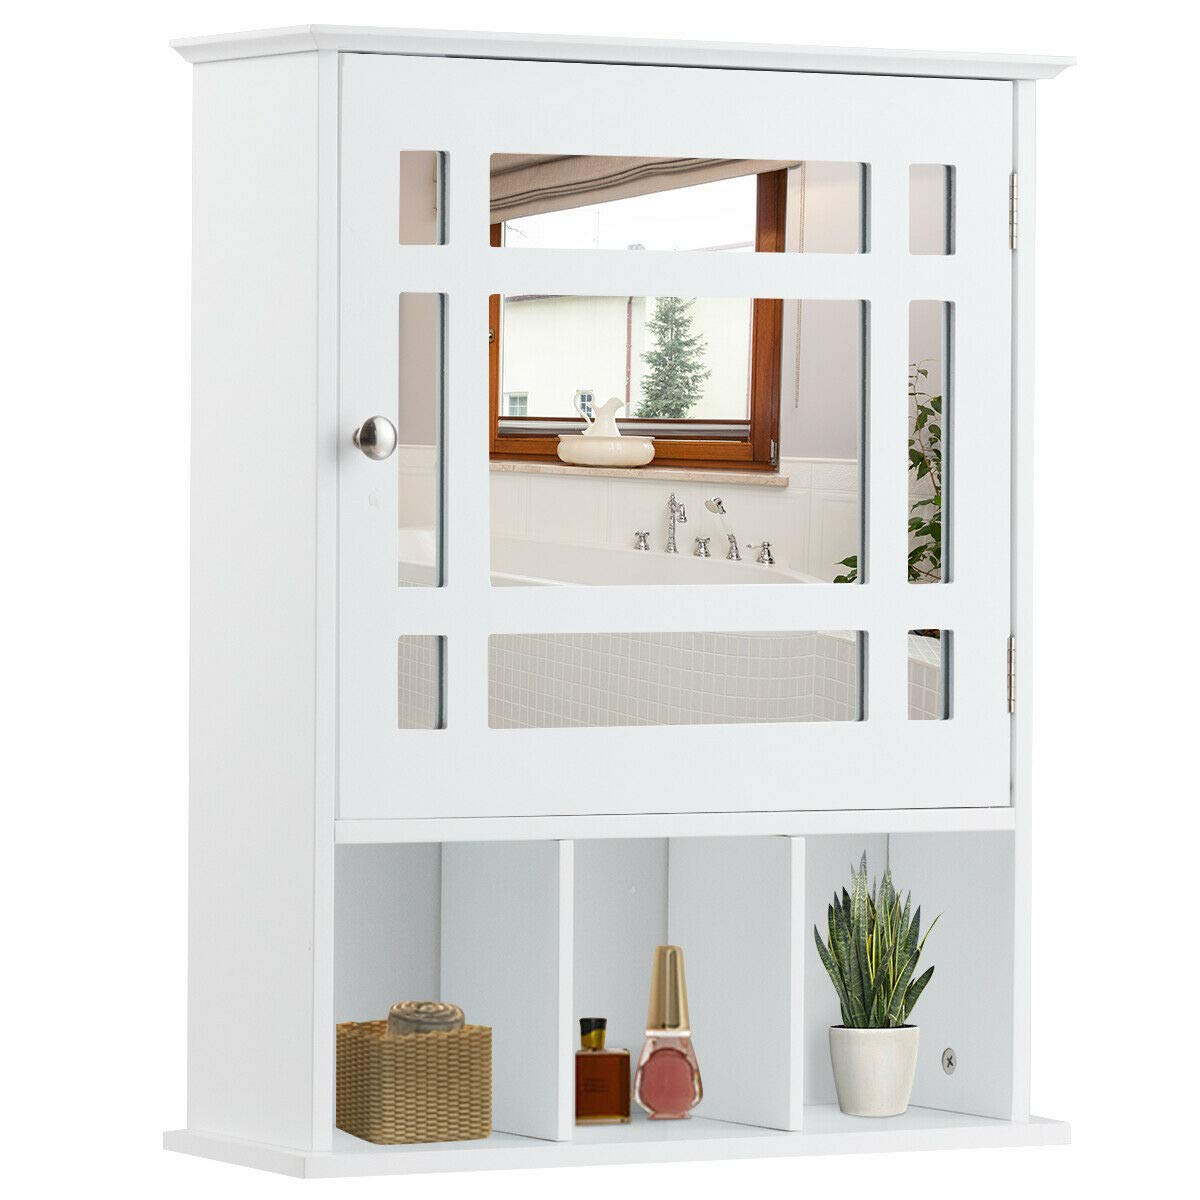 Tangkula Mirrored Medicine Cabinet, Bathroom Wall Mounted Storage Cabinet with Adjustable Shelf and 3 Open Compartments (White) by Tangkula